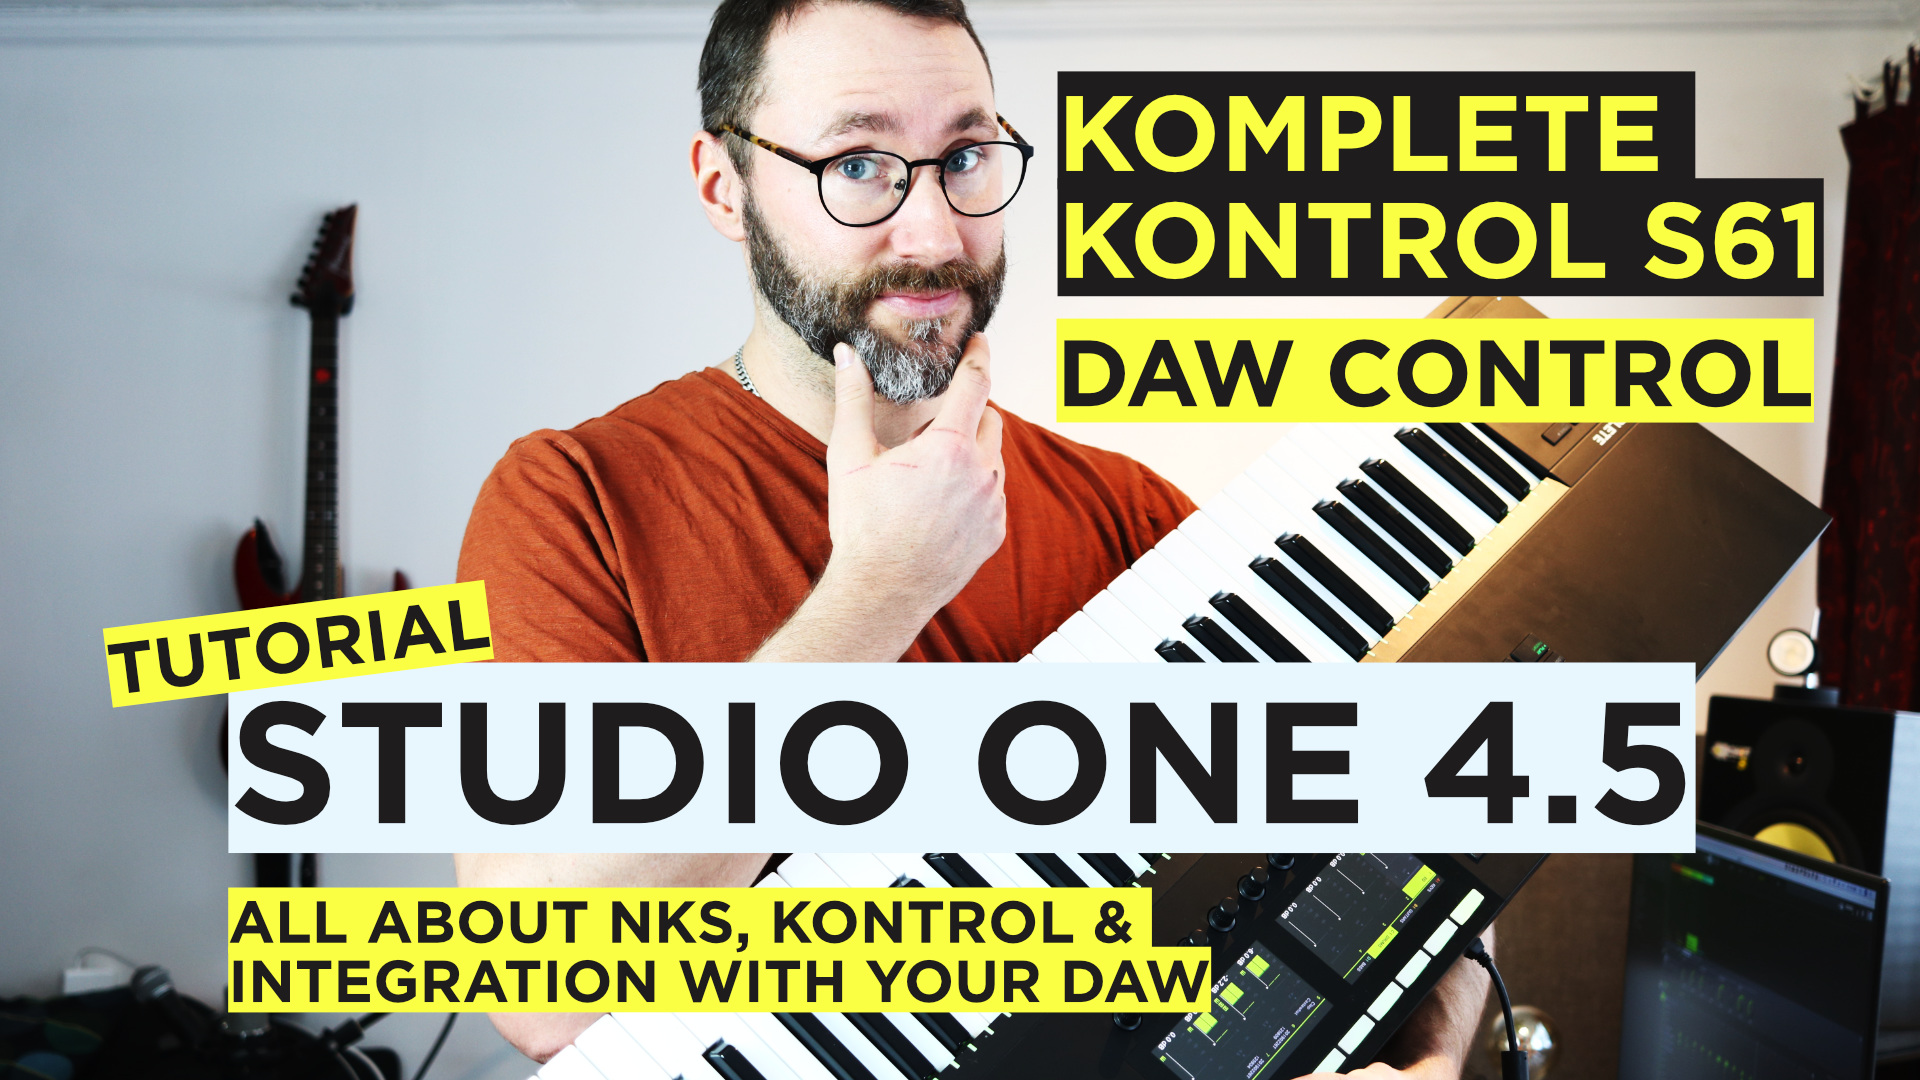 how to set up komplete kontrol mk2 in studio one 4